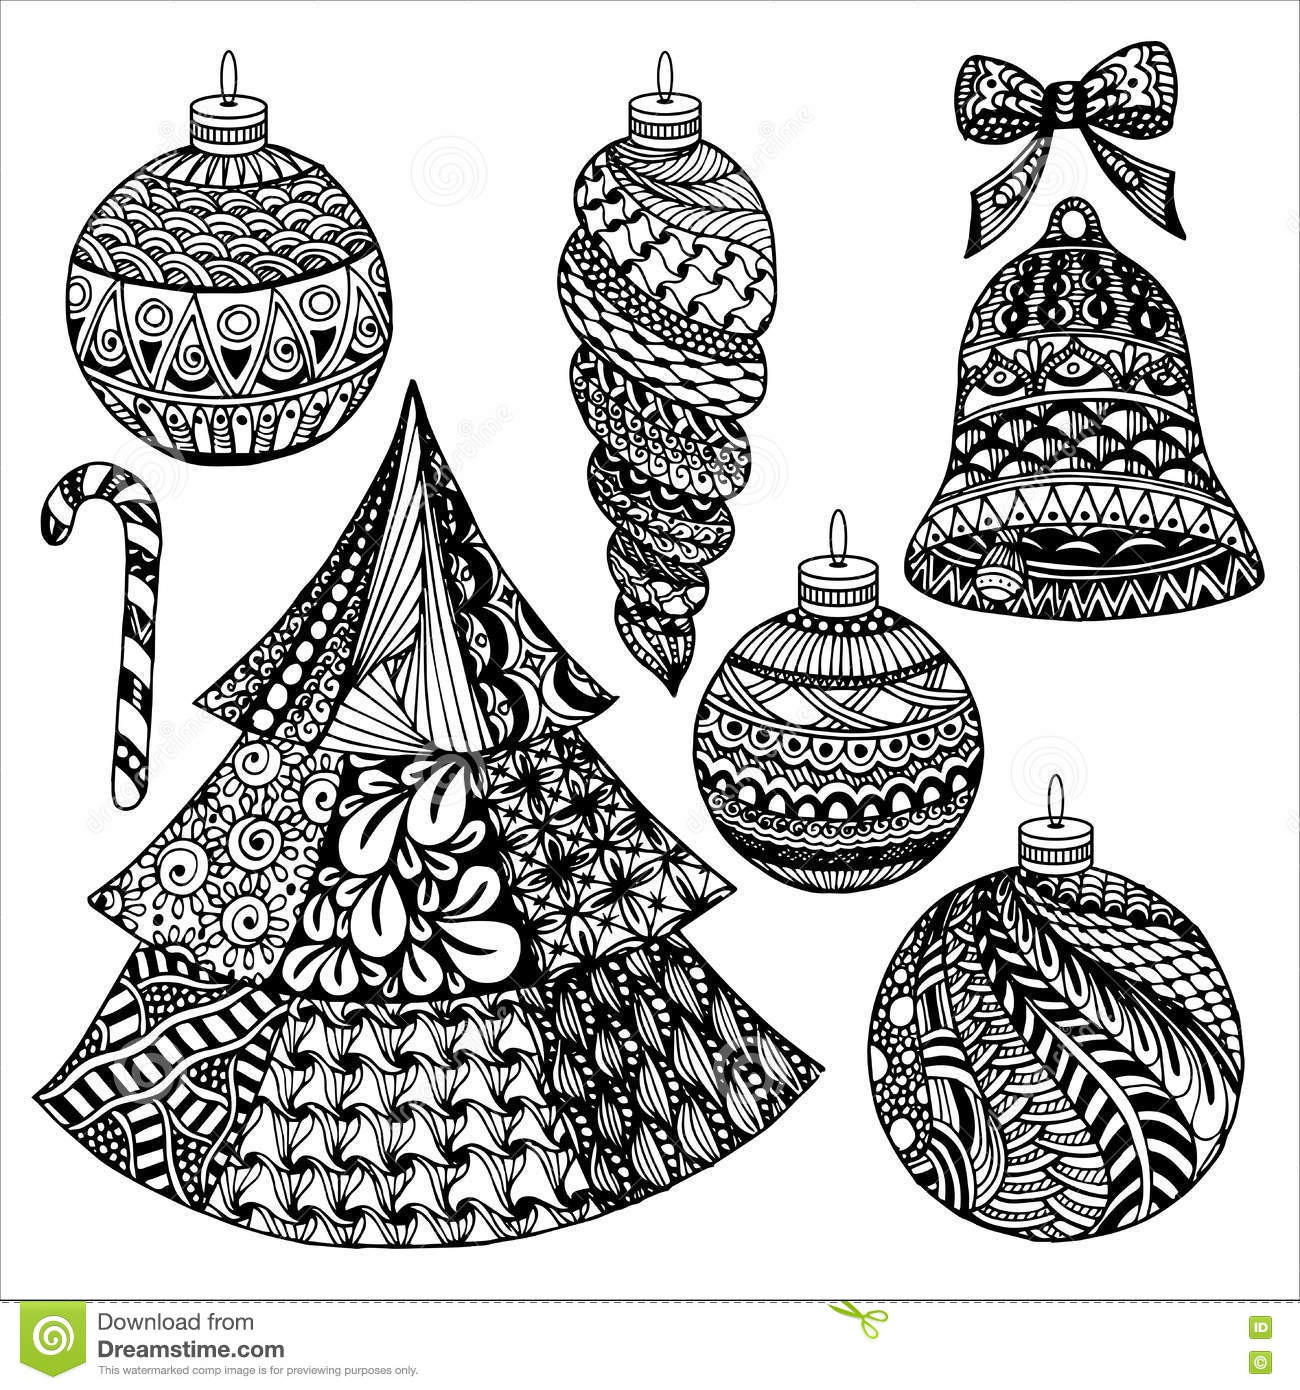 Zentangle julsamling